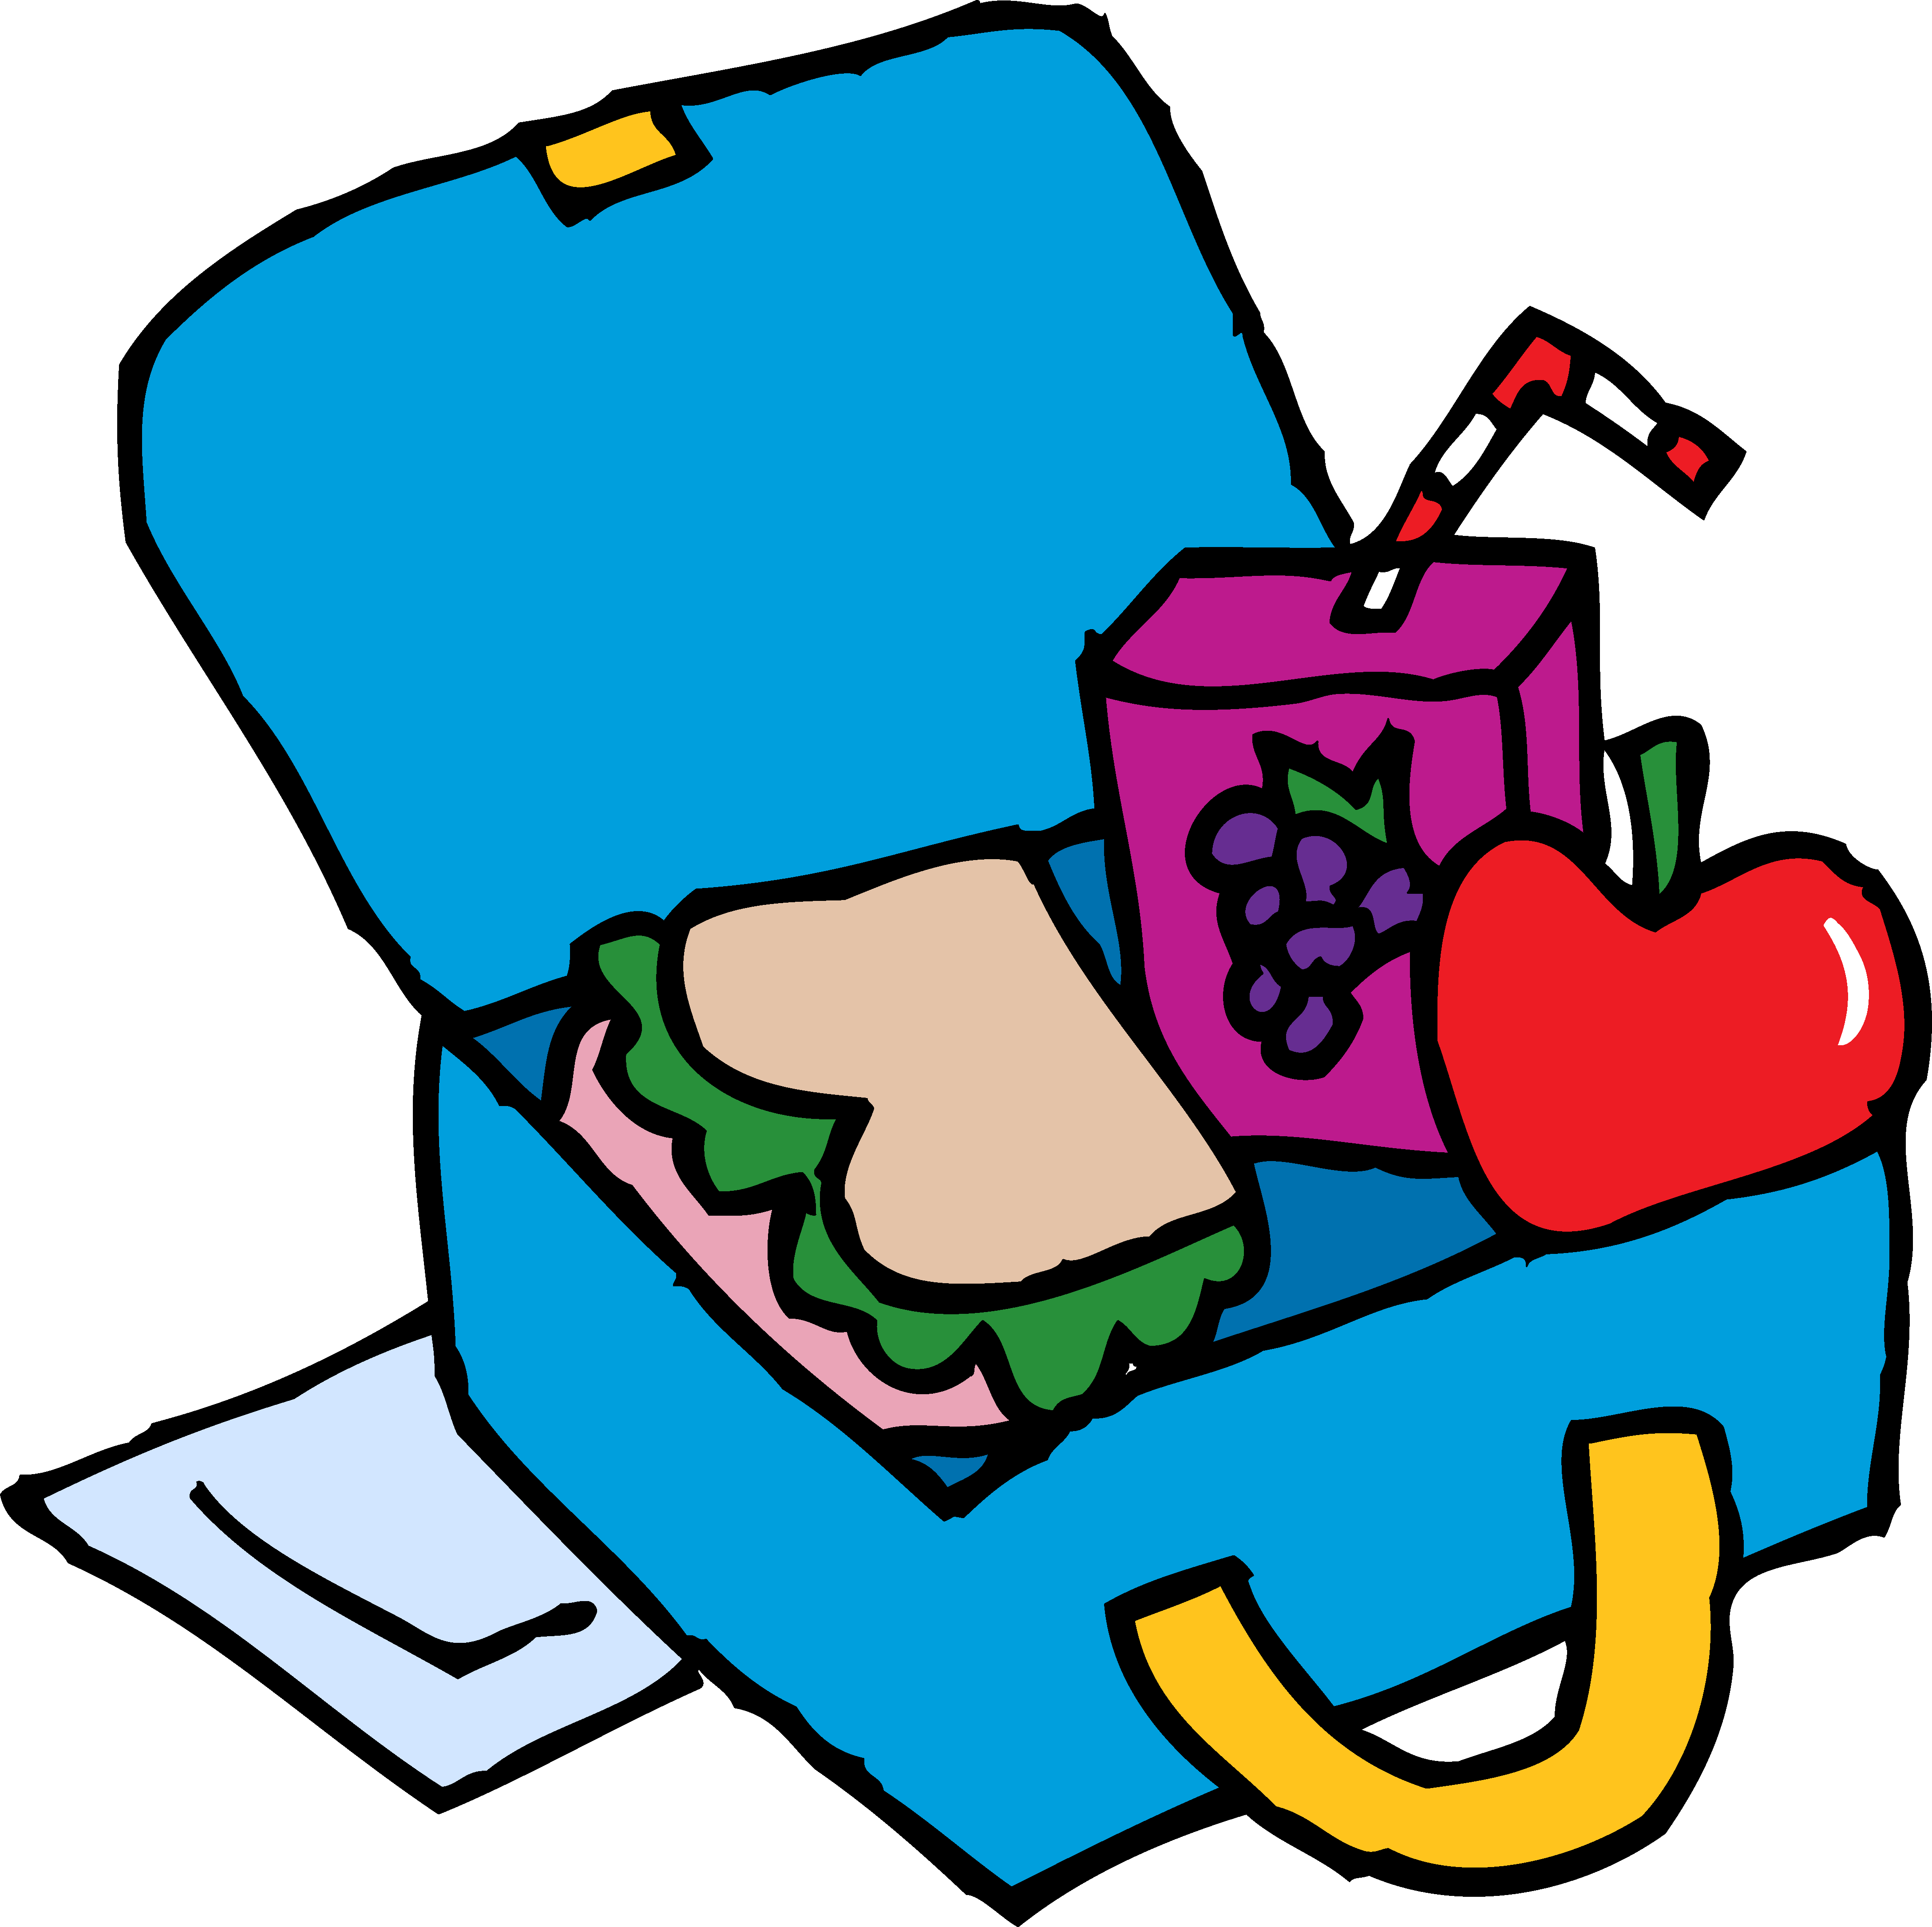 Bags clipart lunch. Bento box of the